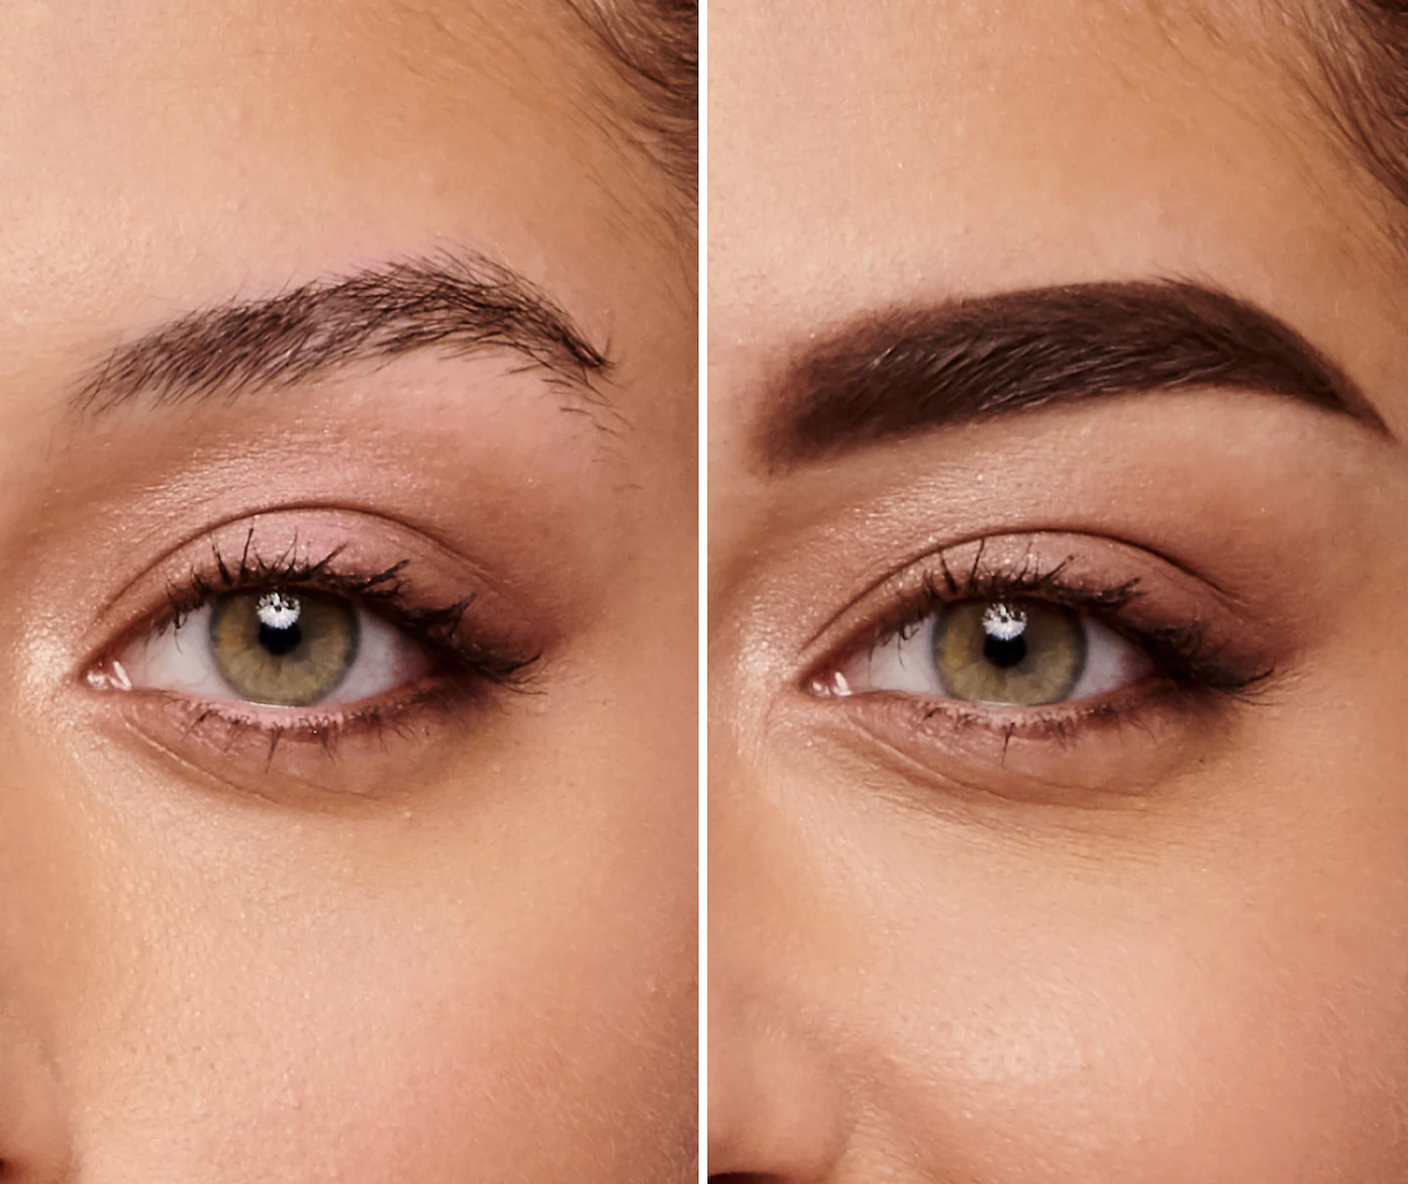 A model's sparse brow without the product / A model's fuller brow with the product